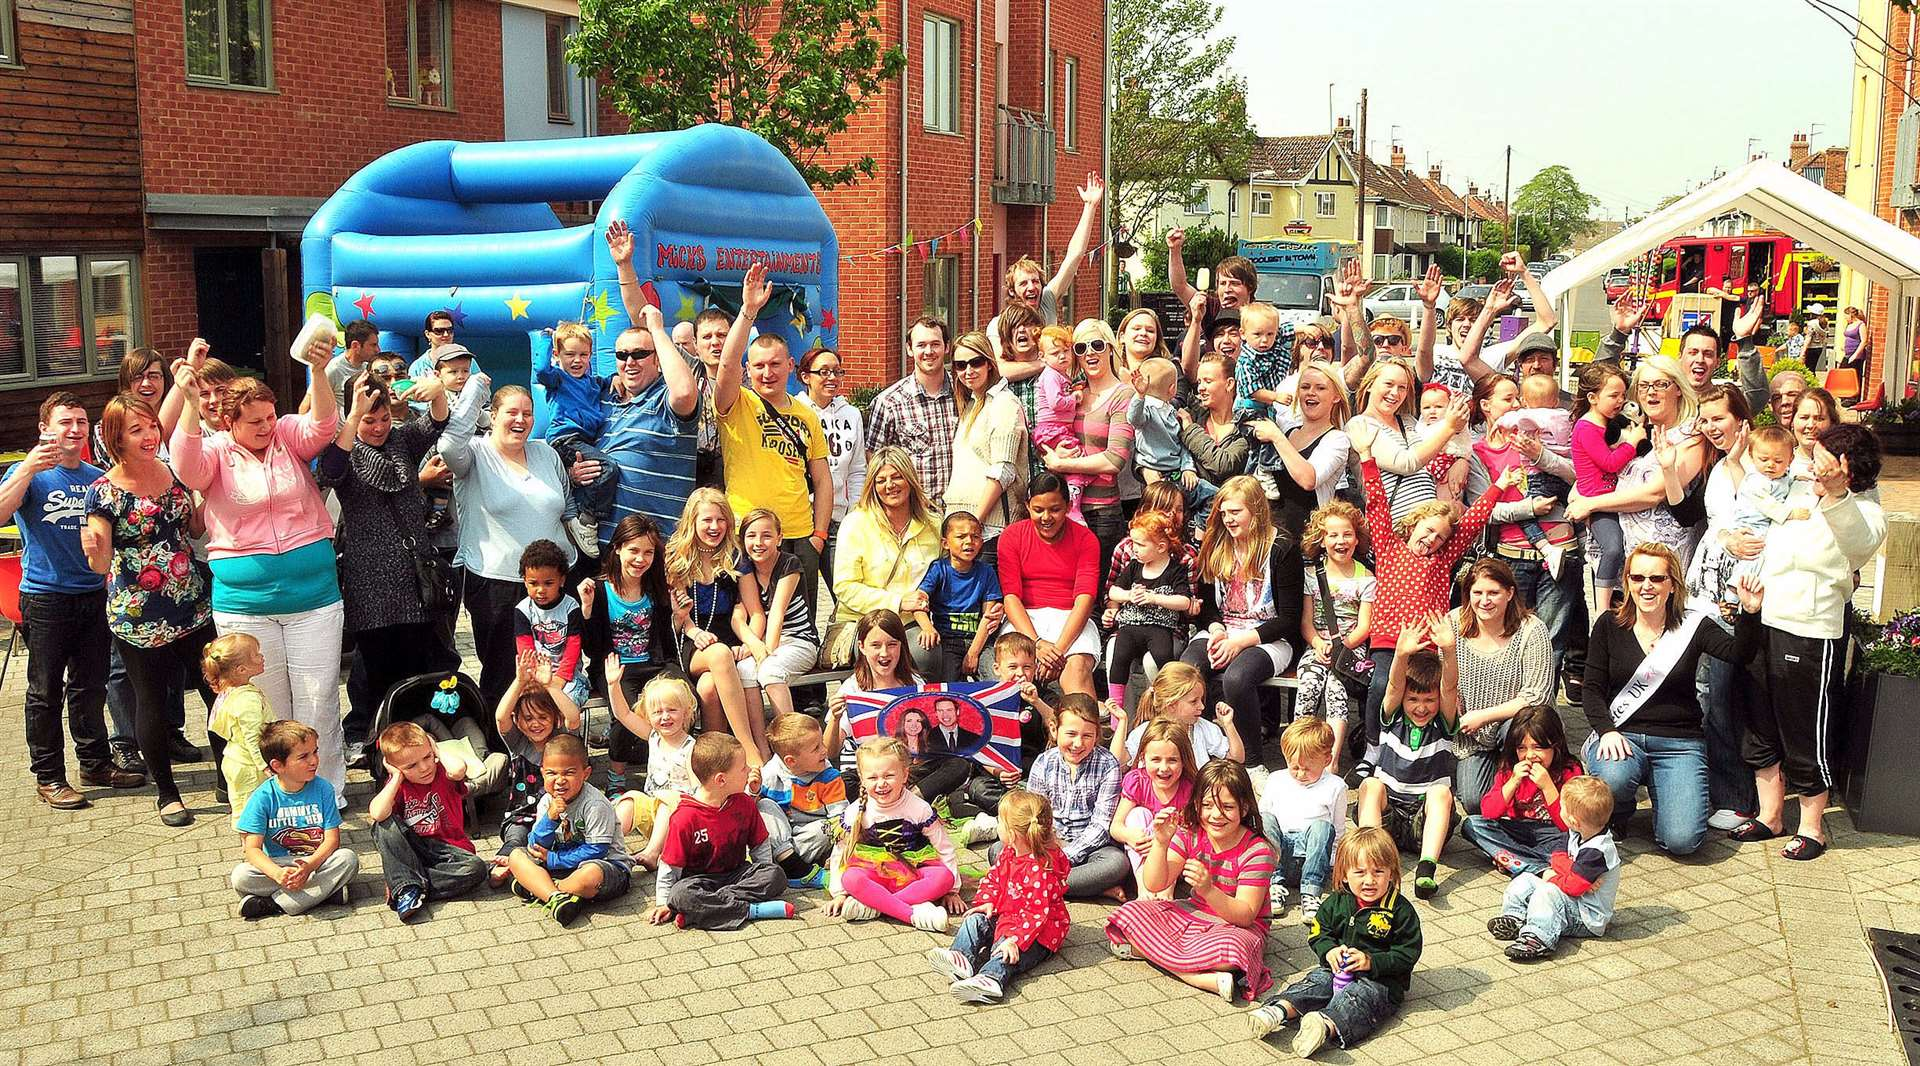 Royal Wedding street party in Portway, Yours South Lynn community to celebrate the wedding of Prince William and Catherine Middleton. (46651454)